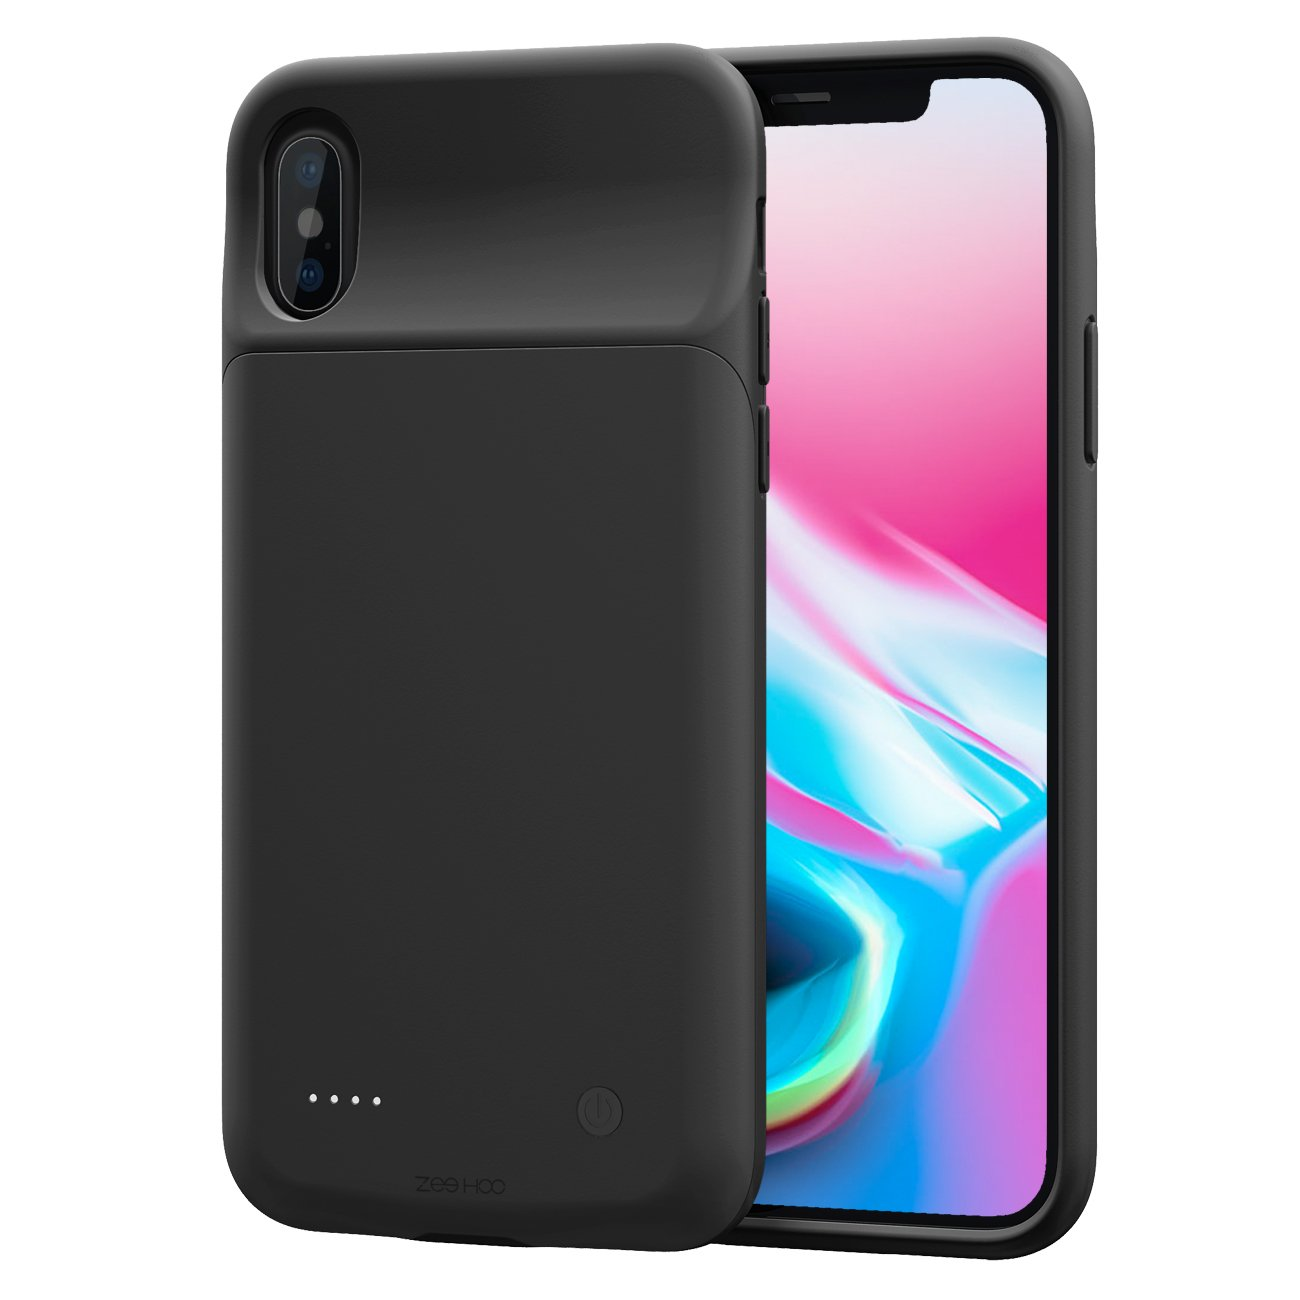 ZeeHoo 3200mAh Slim Charging Case for iPhone X/iPhone 10 (5.8-inch) Protective Charger Case Extended Battery Pack, Compatiable with Lightning Headphones, Black